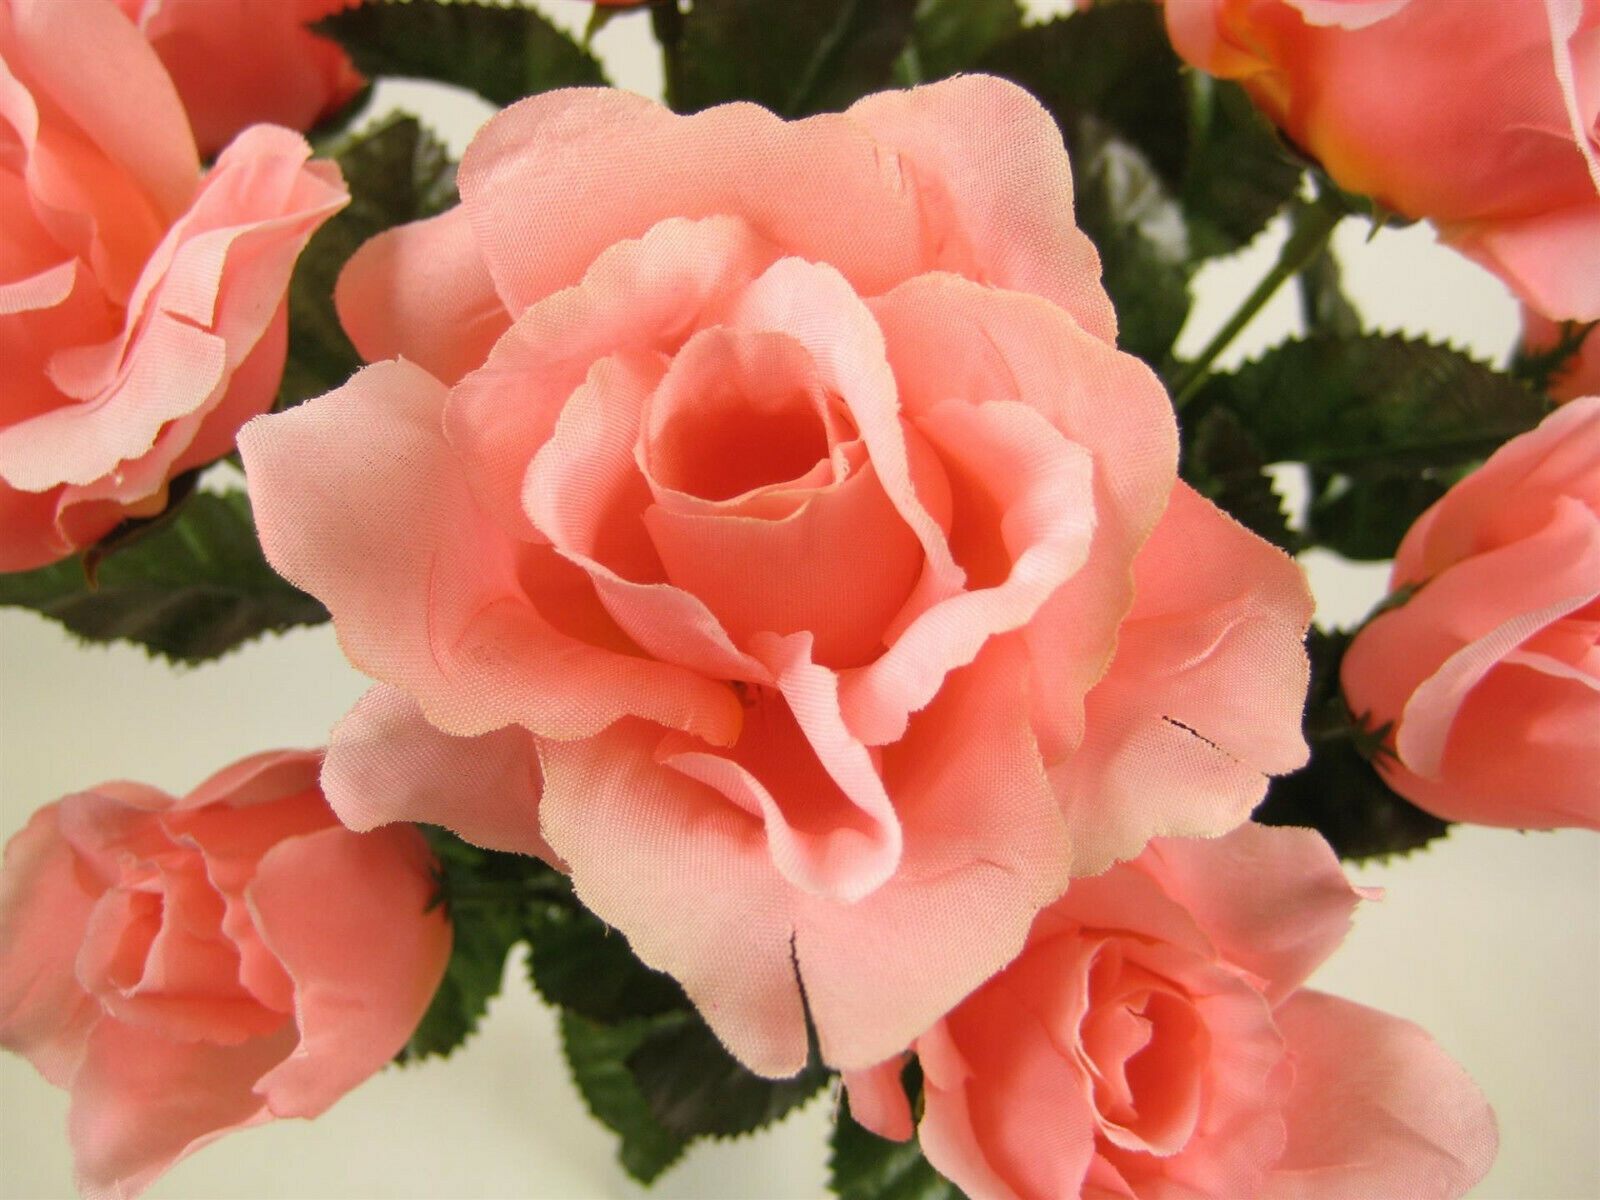 Wholesale 72x Artificial Flowers Open Open Open Rosa Bush with Buds (864 heads in total) 3ed4f8